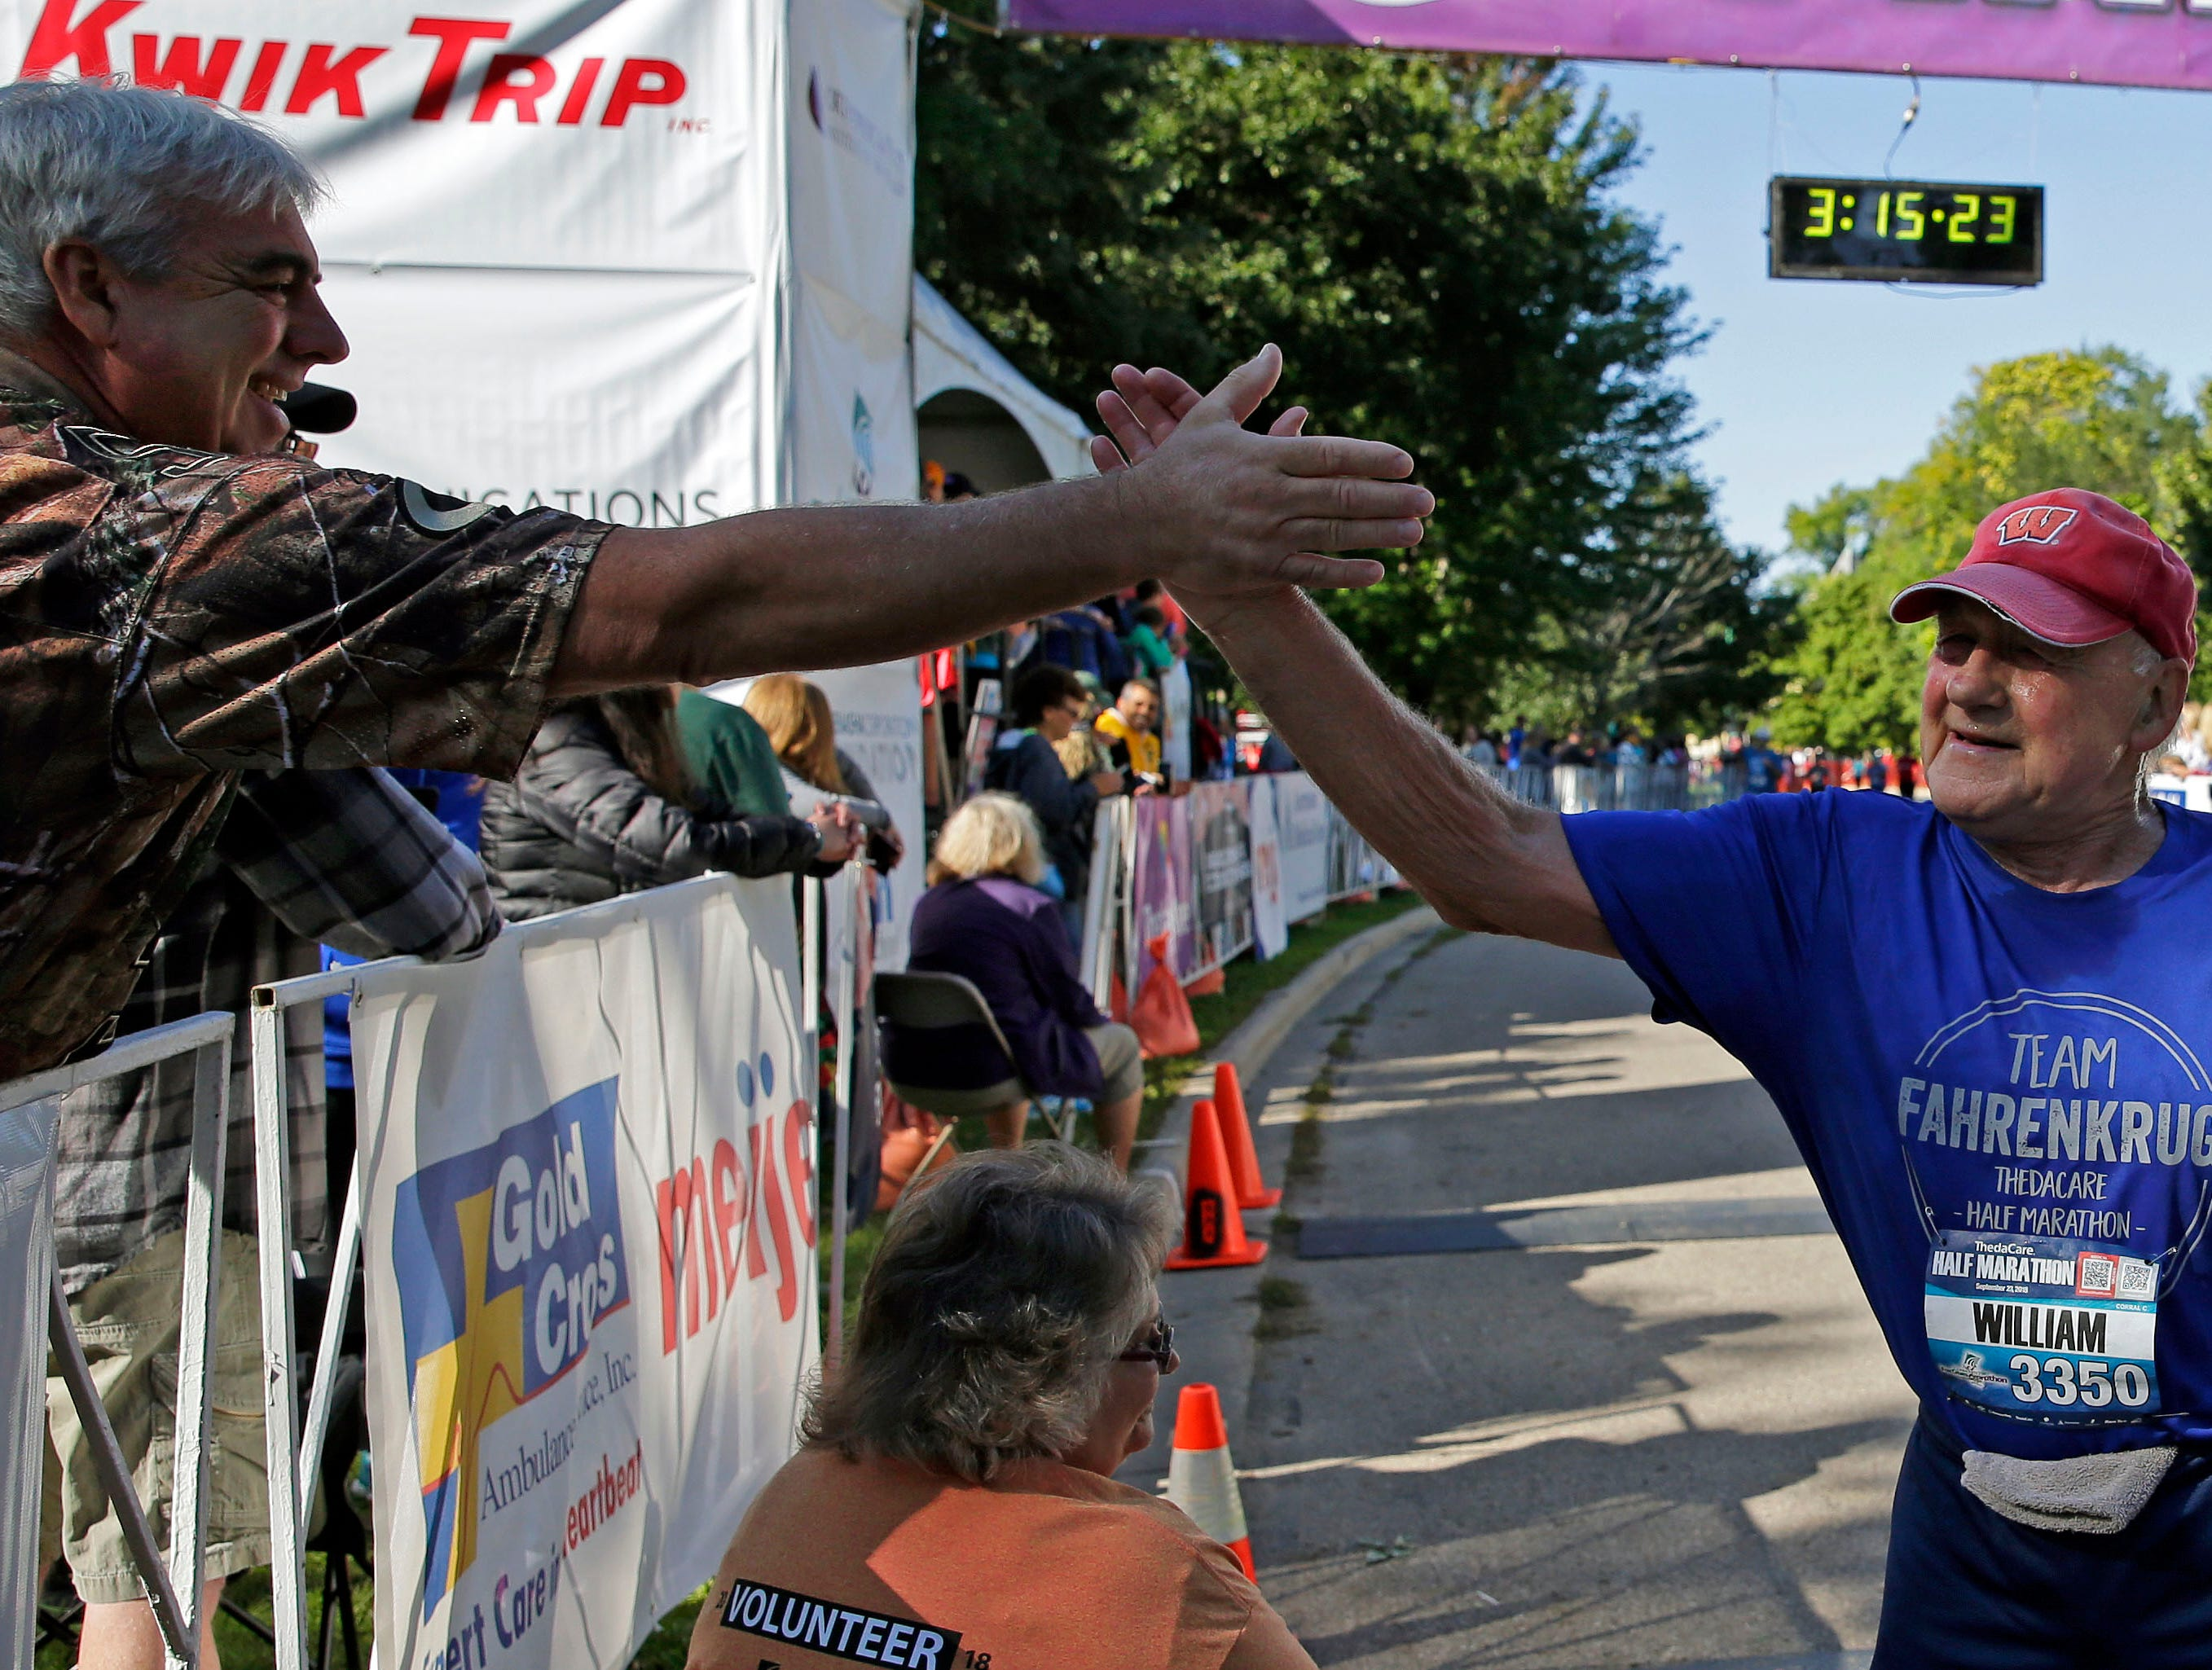 William Fahrenkrug gets congratulations at the finish as the Community First Fox Cities Marathon takes place Sept. 23, 2018, across the Fox Cities.